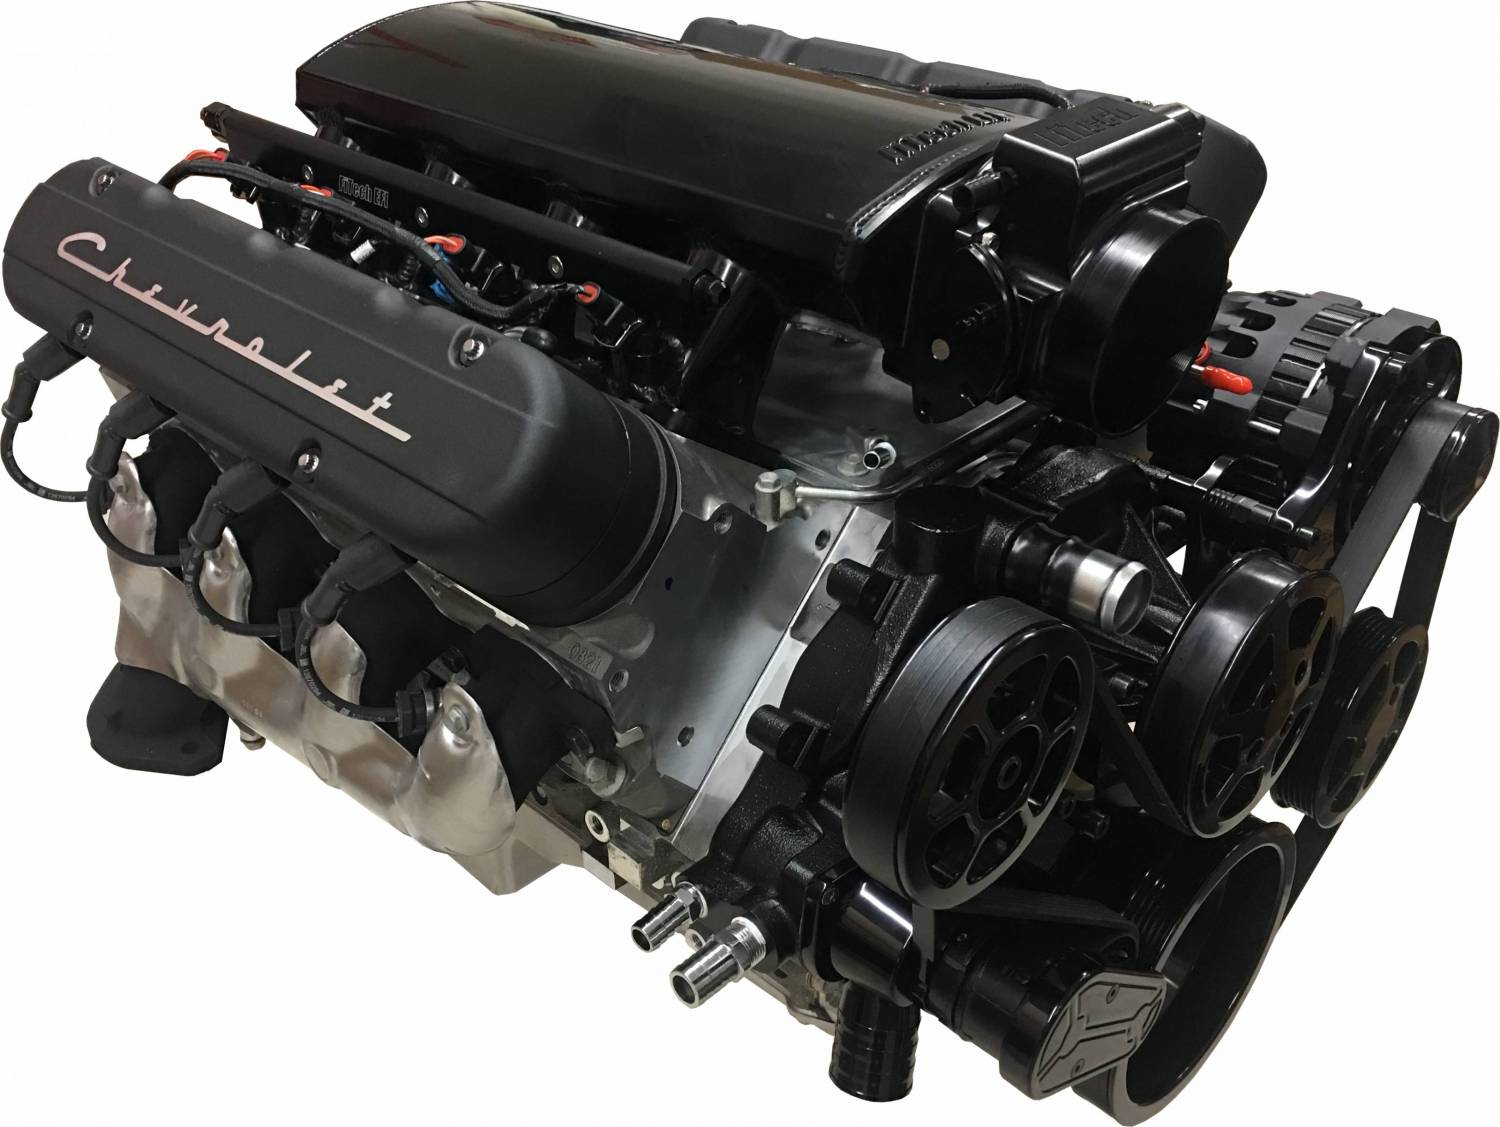 GMP-19256529-2EF - Pace Performance LS3 570HP Crate Engine Package